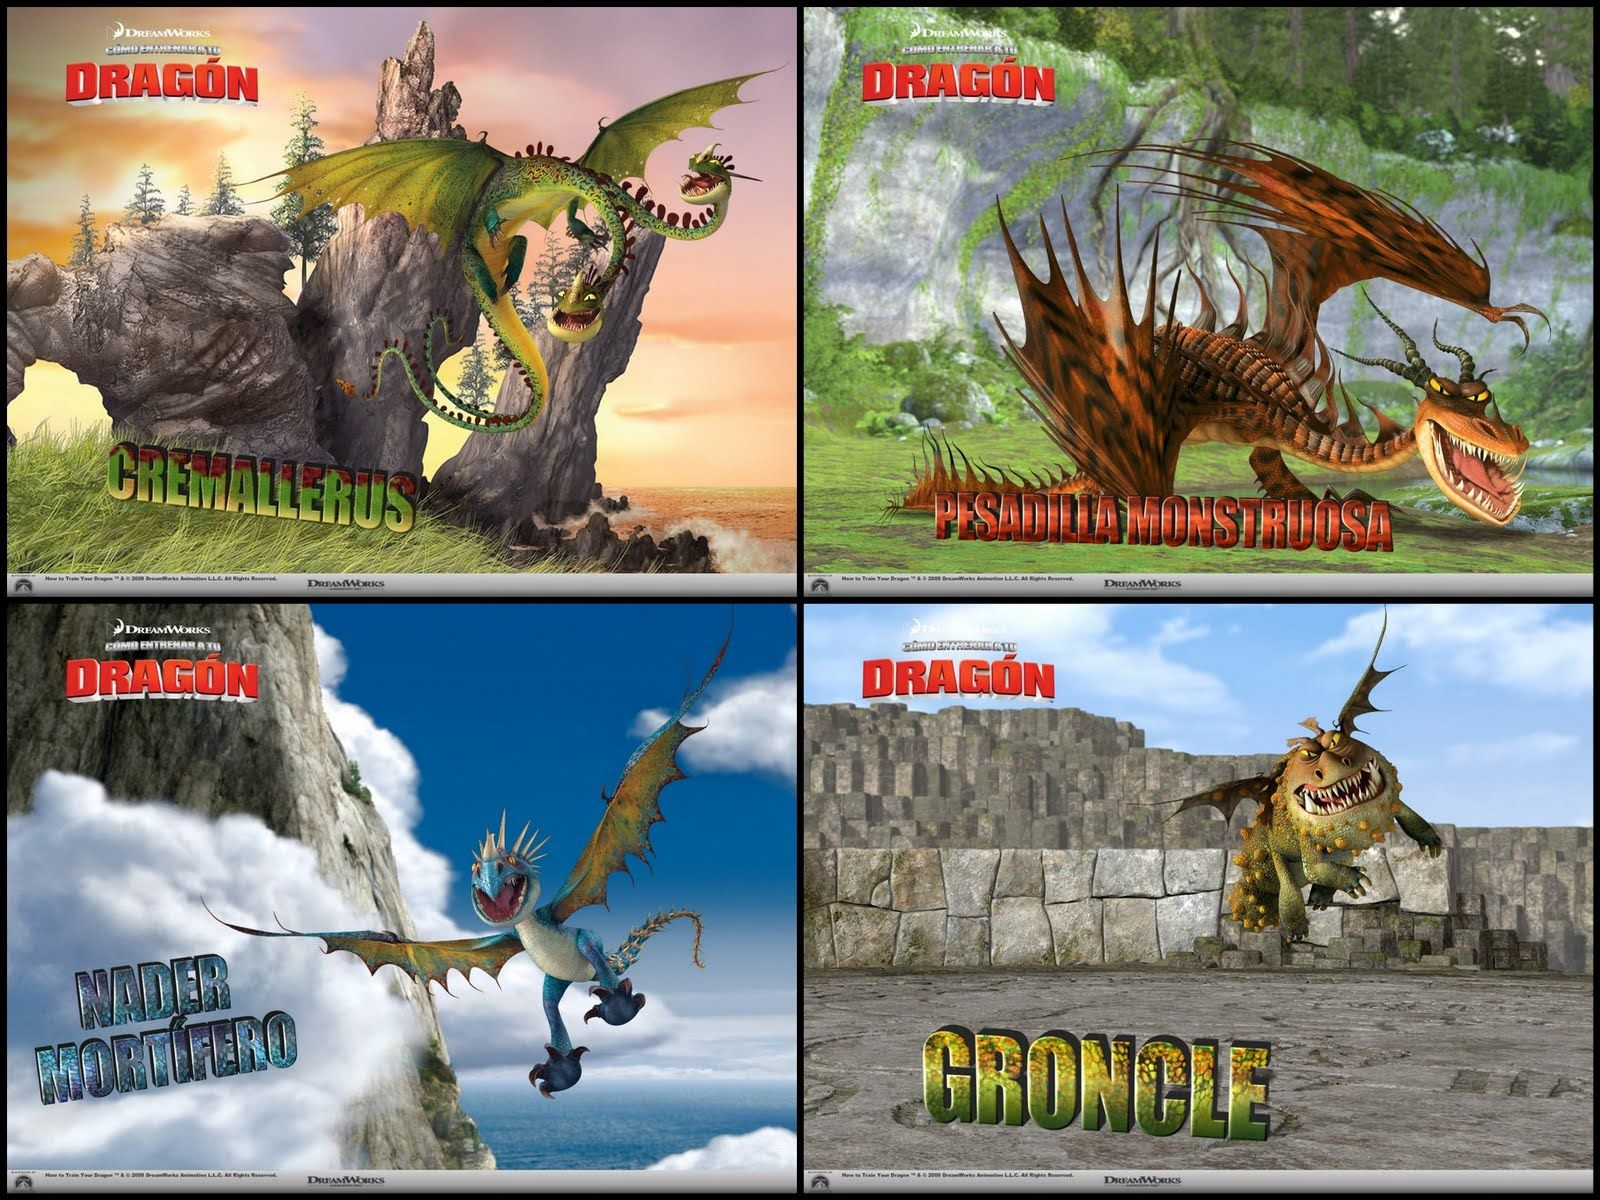 Como Entrenar A Tu Dragón Dragones How To Train Your Dragon Dreamworks Characters Disney And Dreamworks